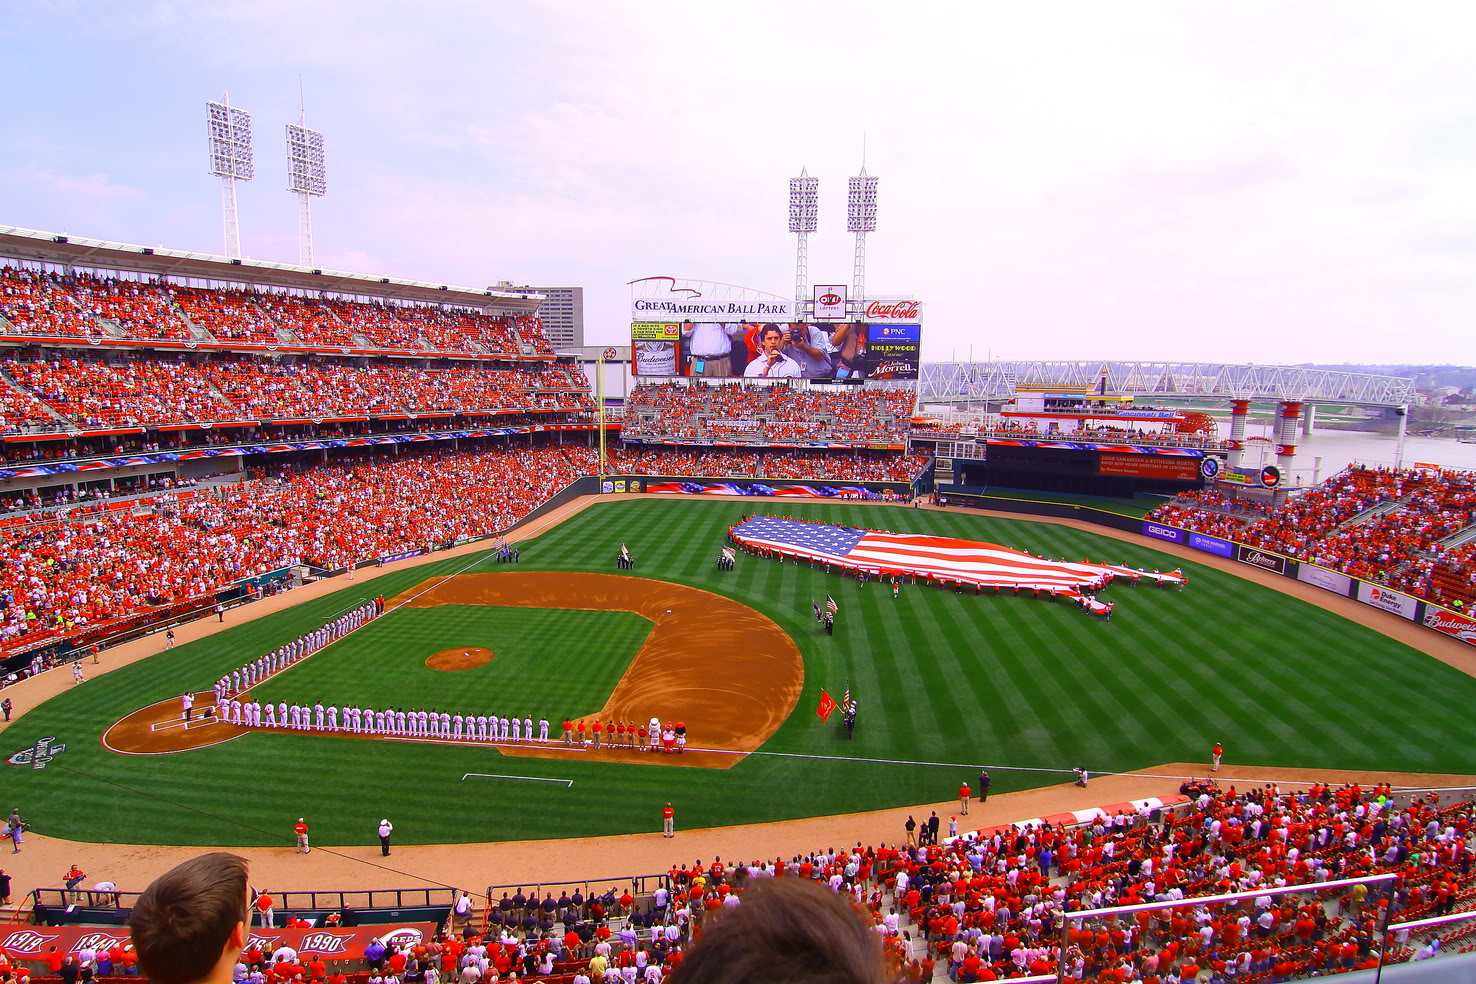 Cincinnati Reds opening day and 2018 coverage on WTCW AM 920/FM 95.1